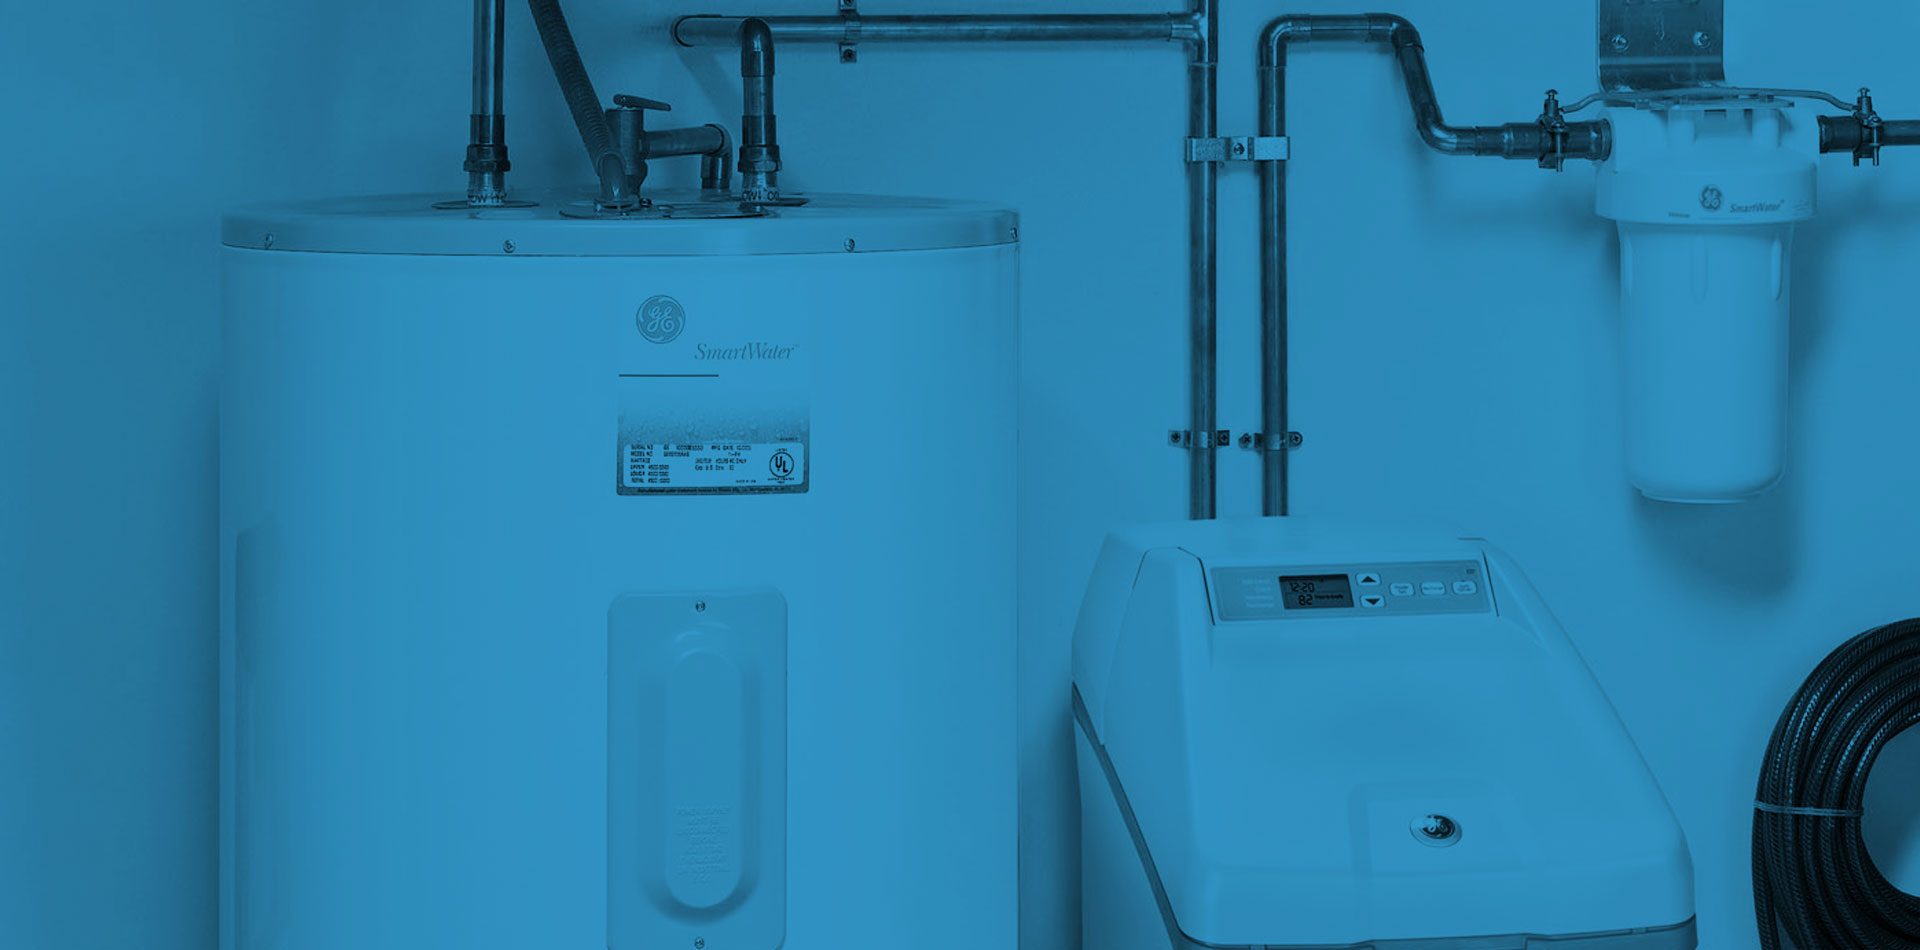 English Plumbing Company › Water Softeners